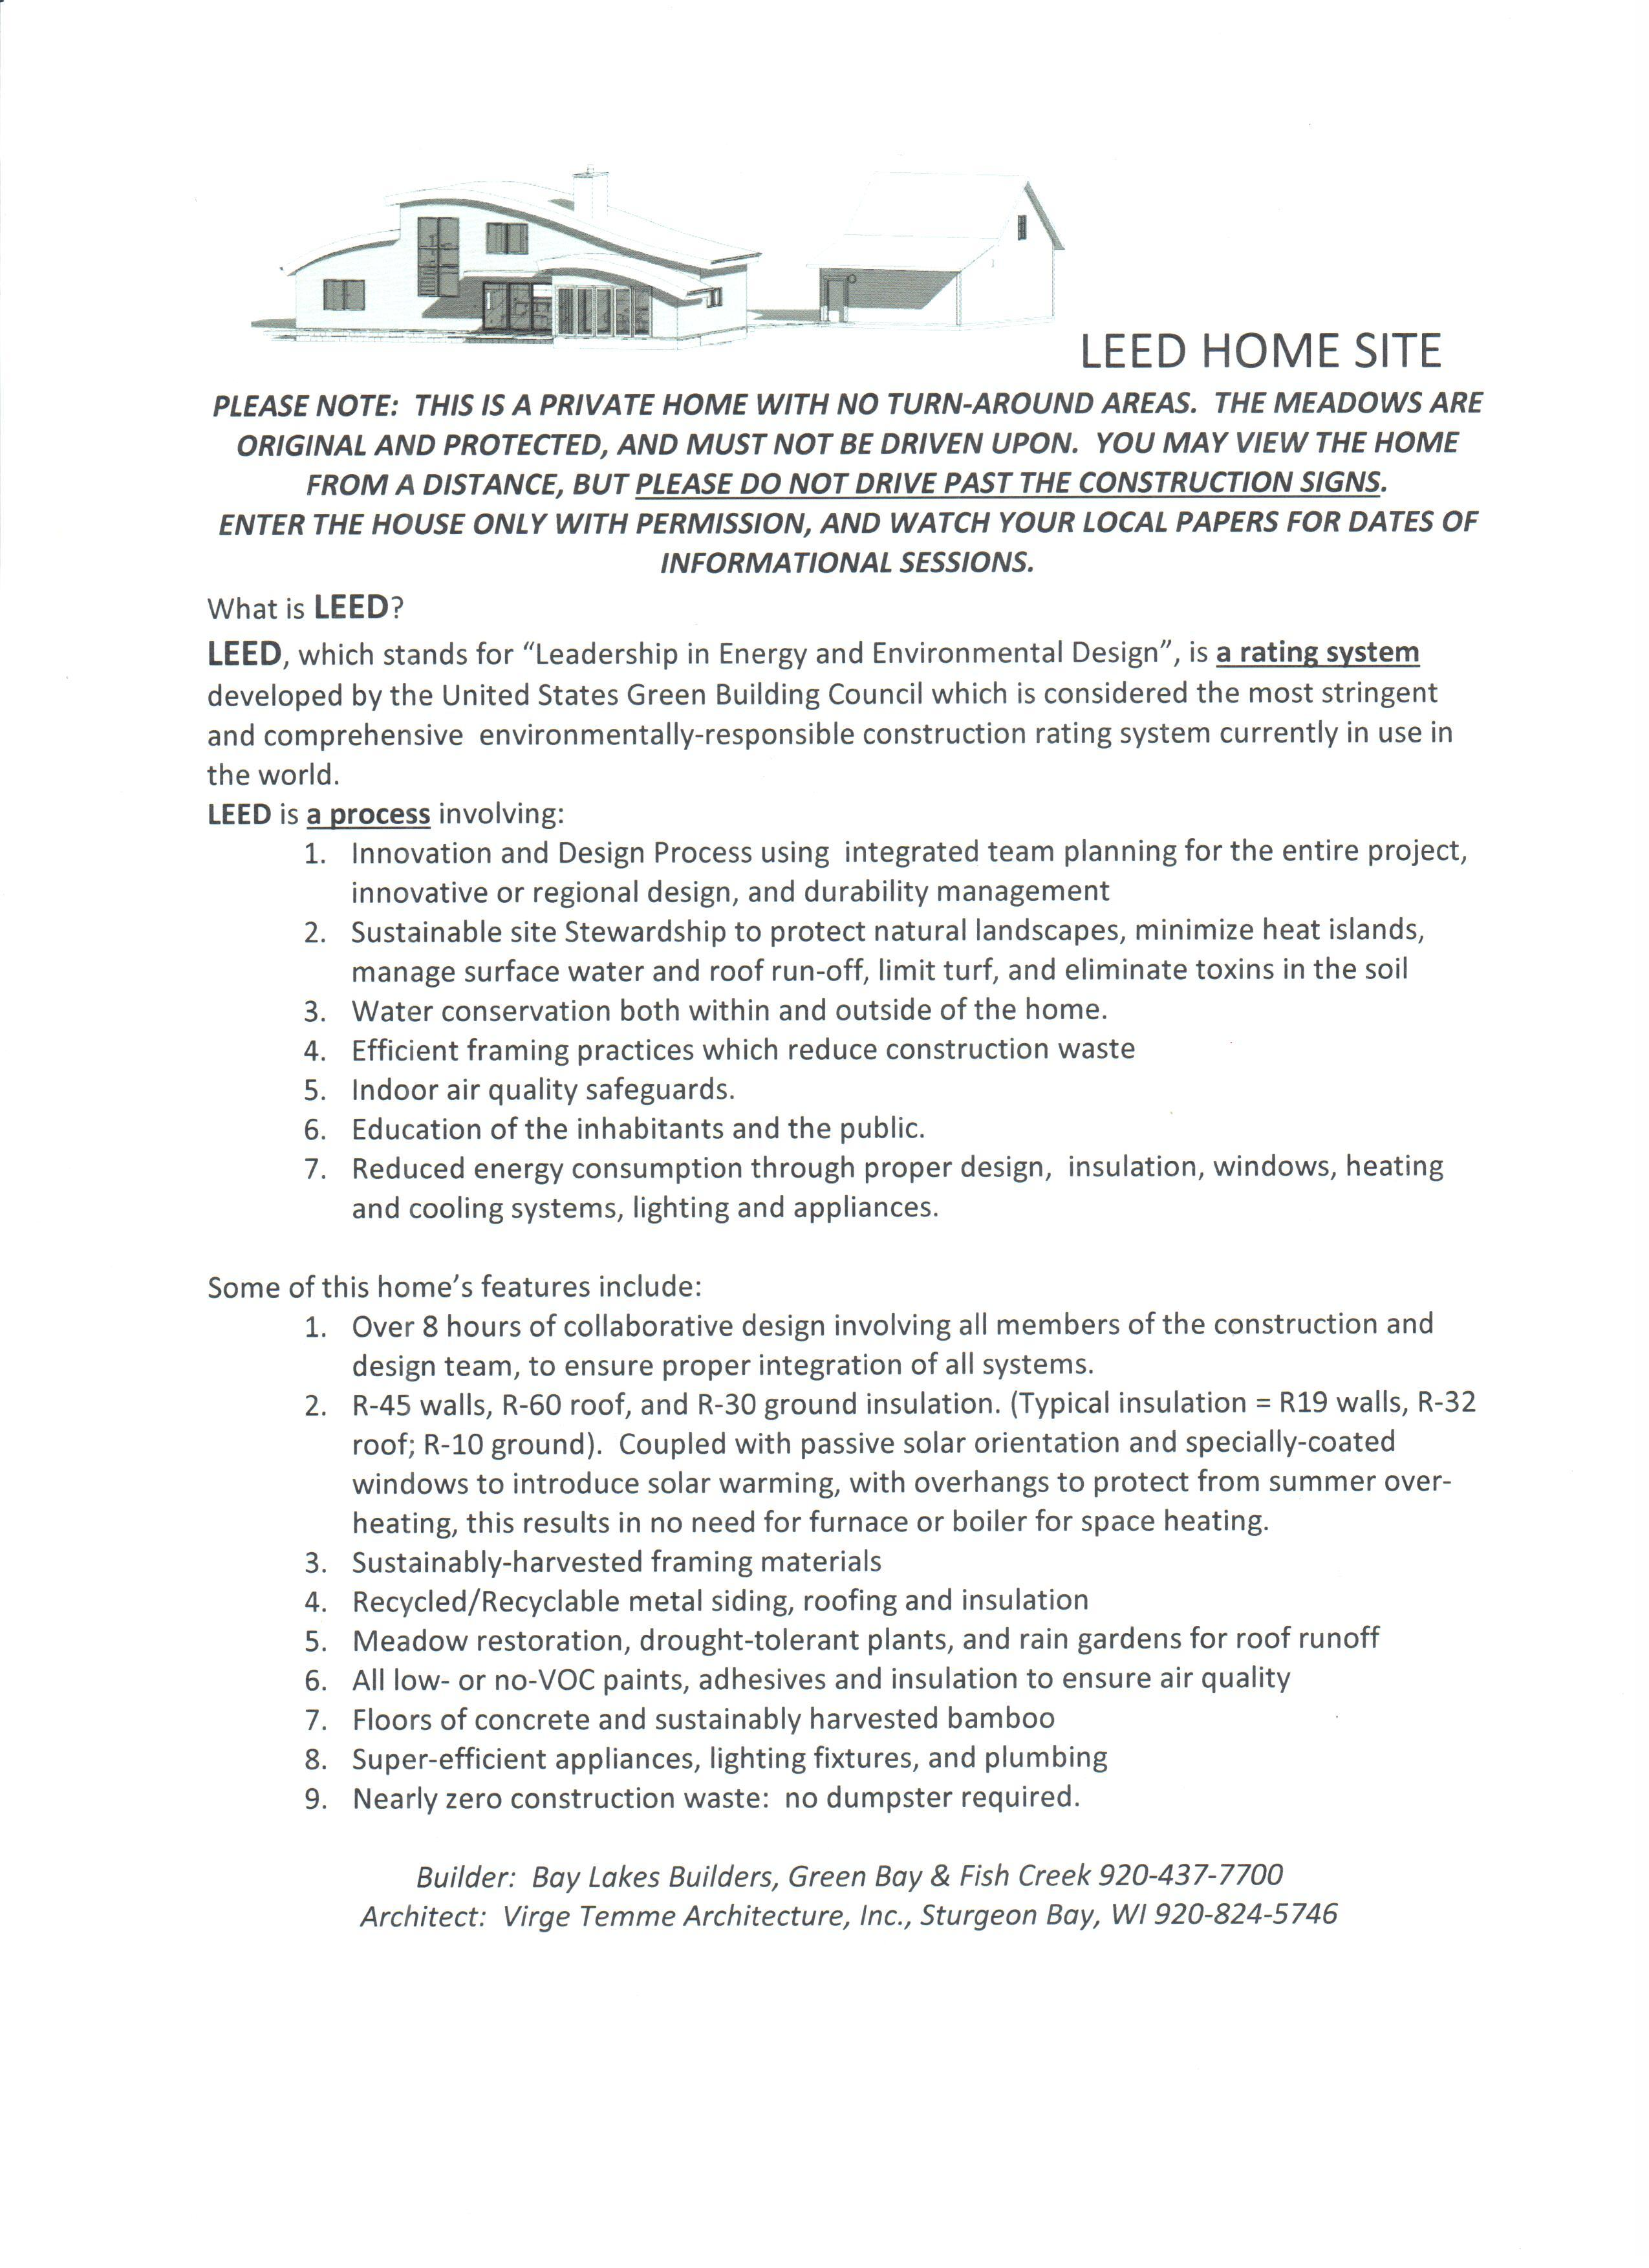 Ithaca a leed for homes timeline virge temme architecture this timeline will serve as an on going educational opportunity to it readers of the leed for home process and how this home satisfied the requirements xflitez Images